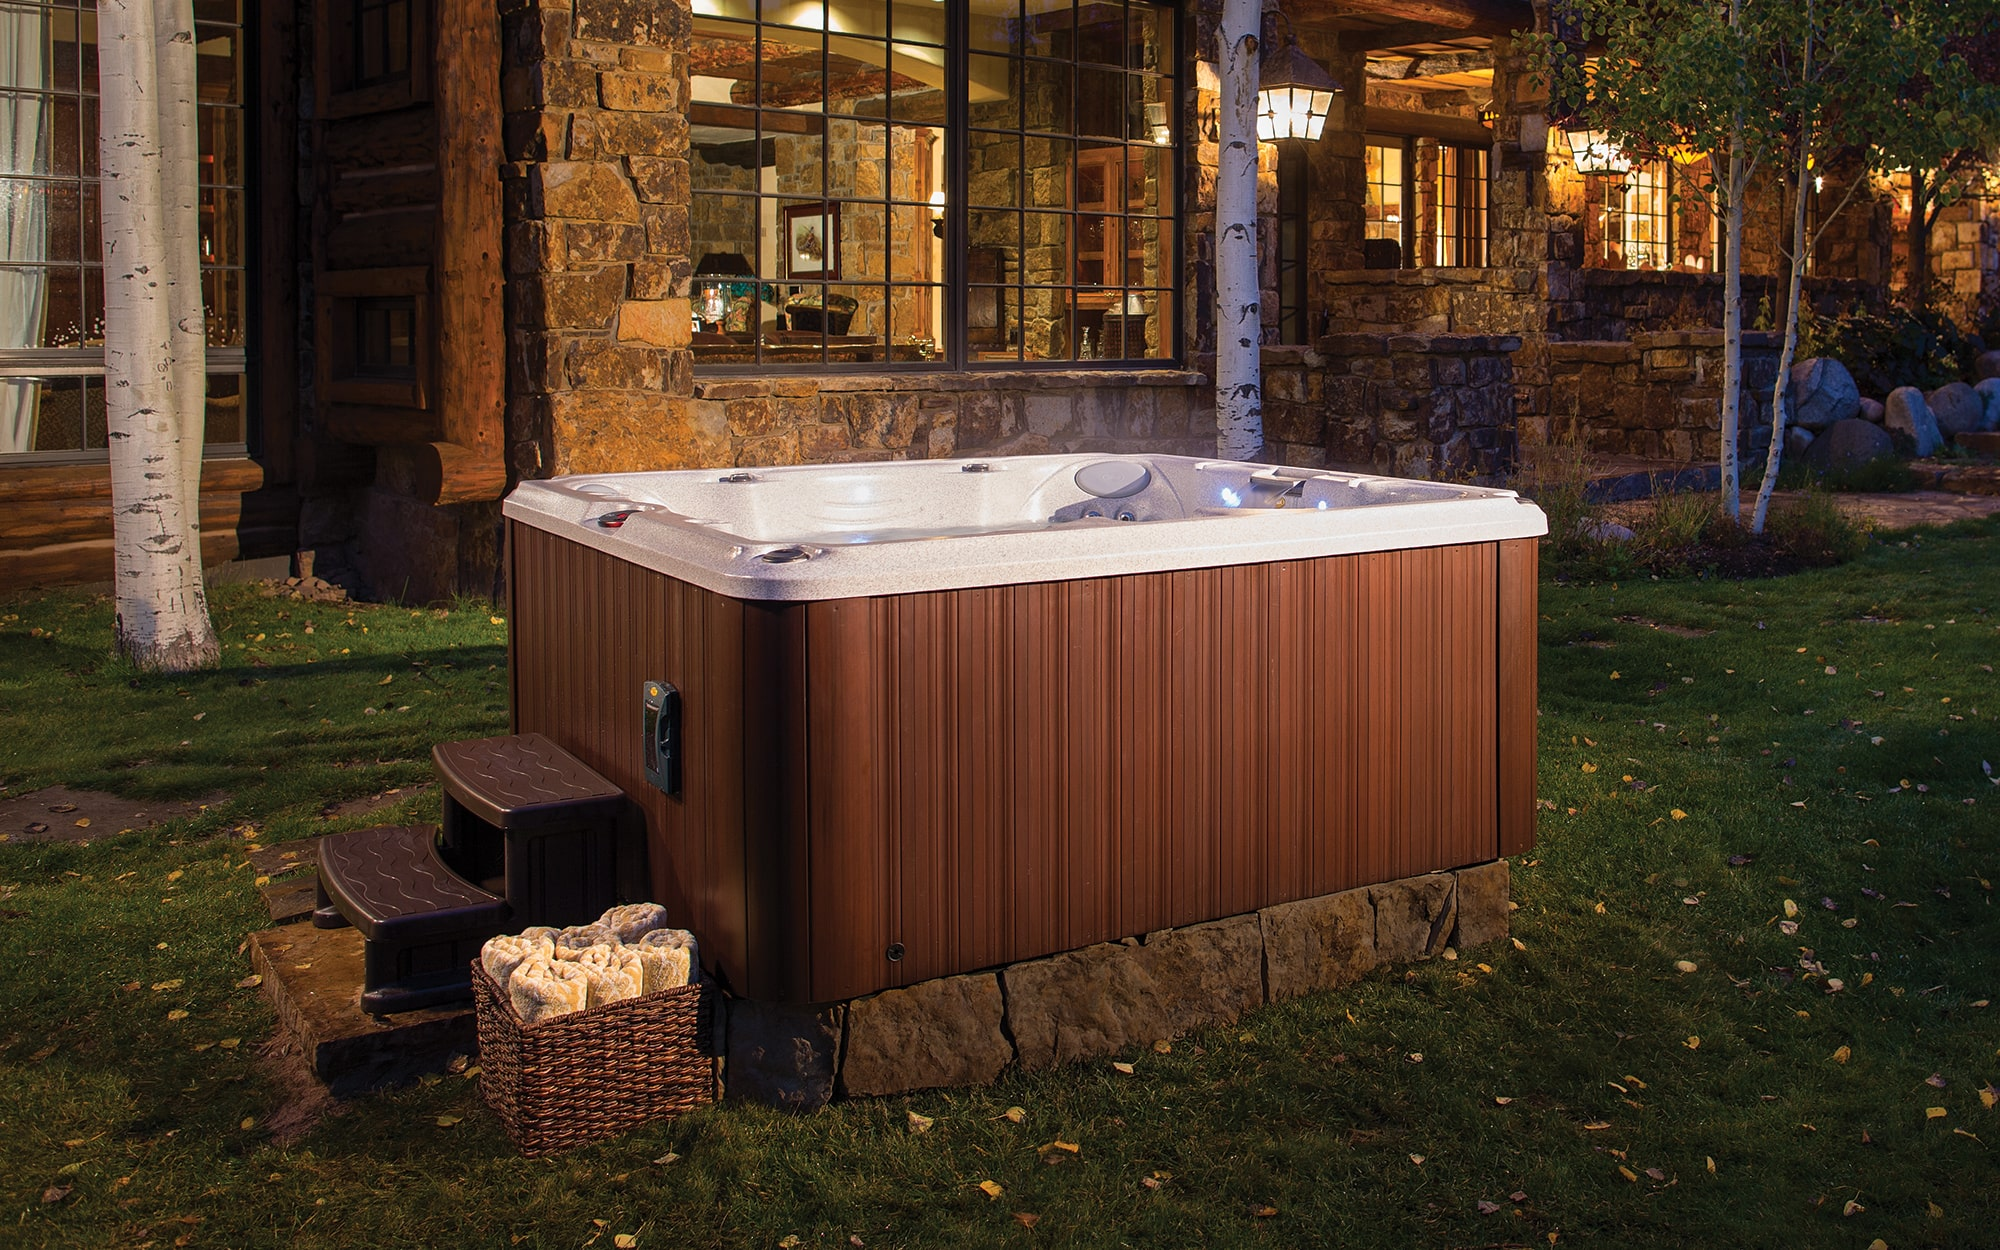 Jacuzzi Hot Tubs J-245 Installation in Los Angeles, California